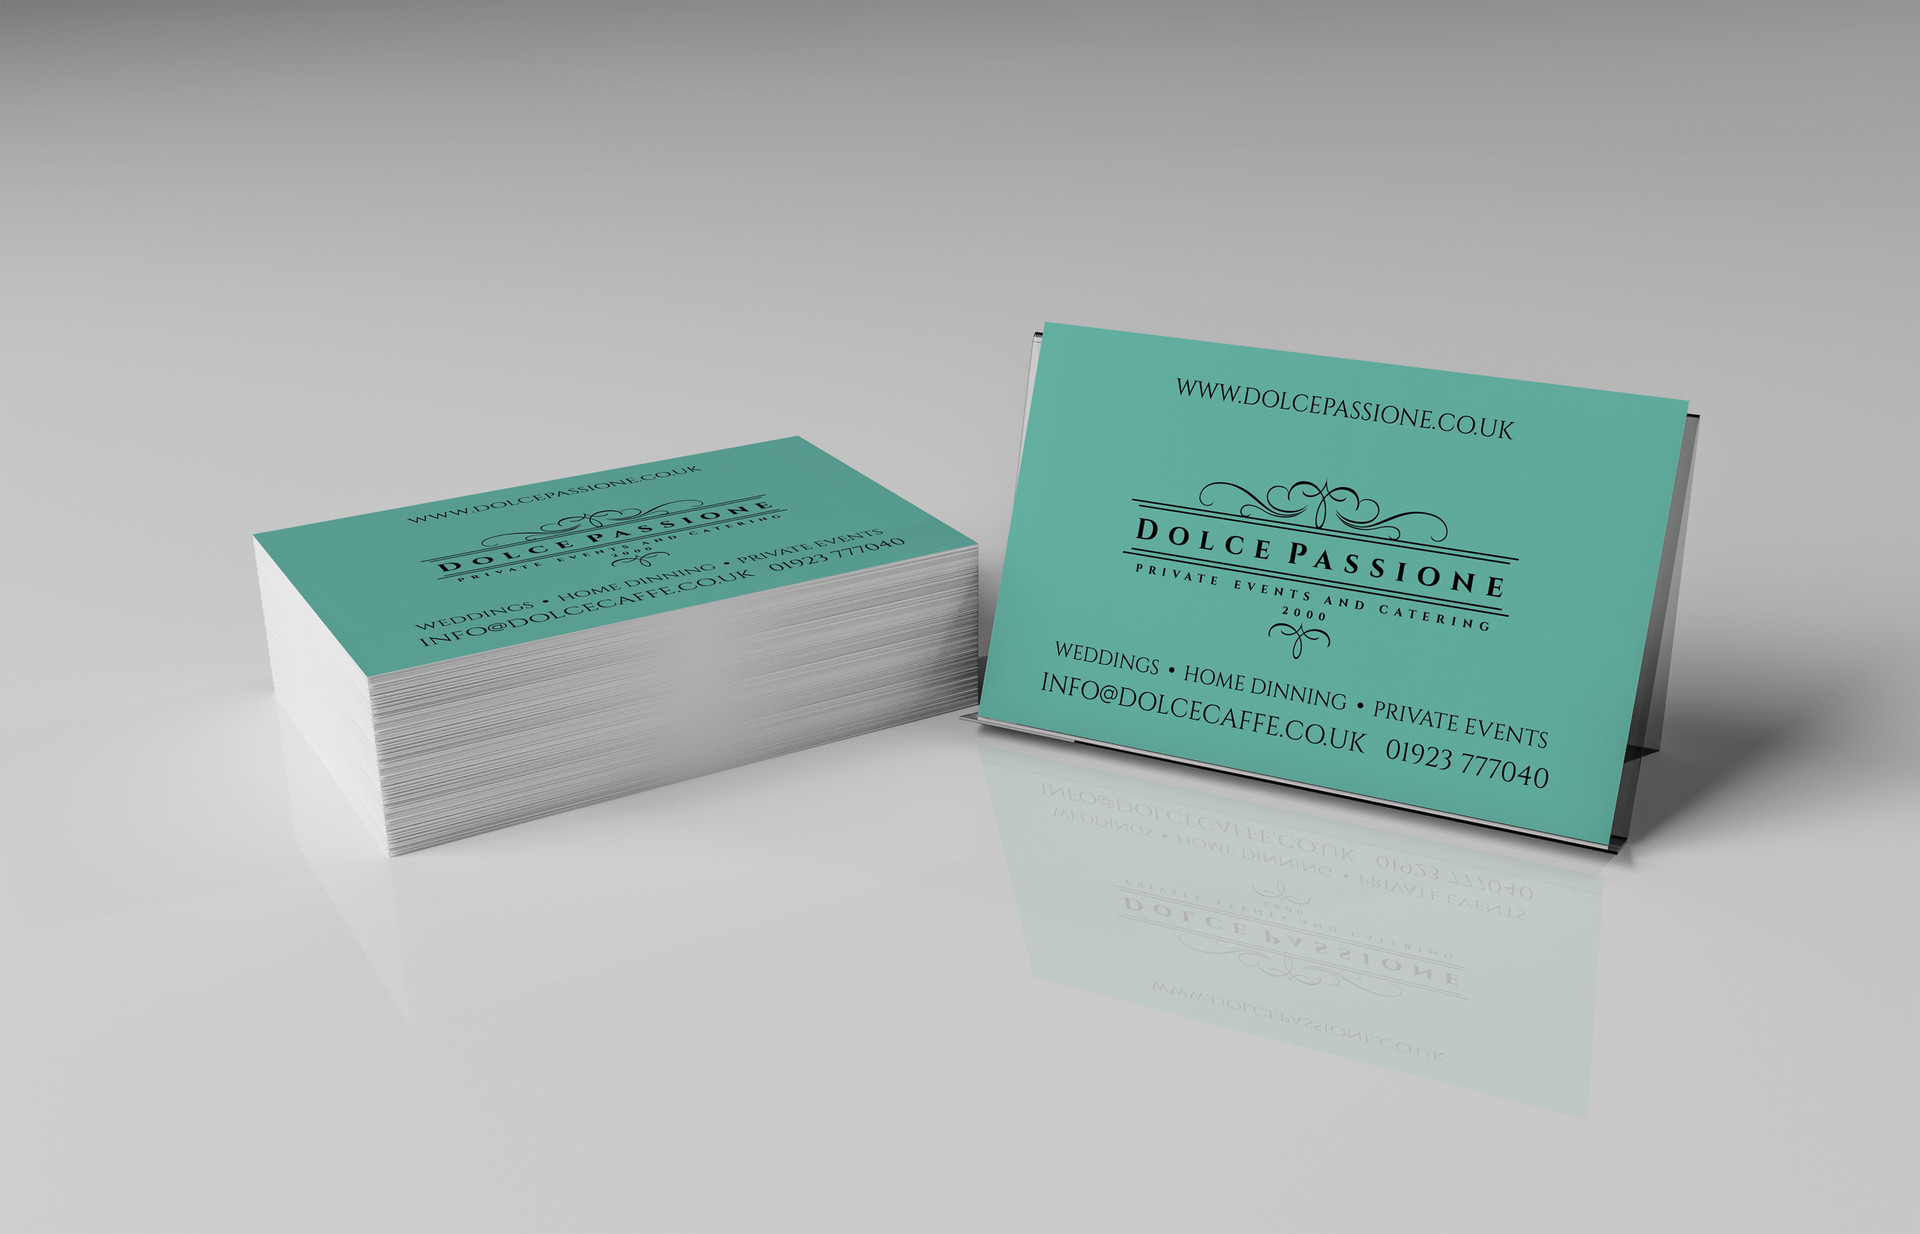 dolcepassionebusiness-card.jpg